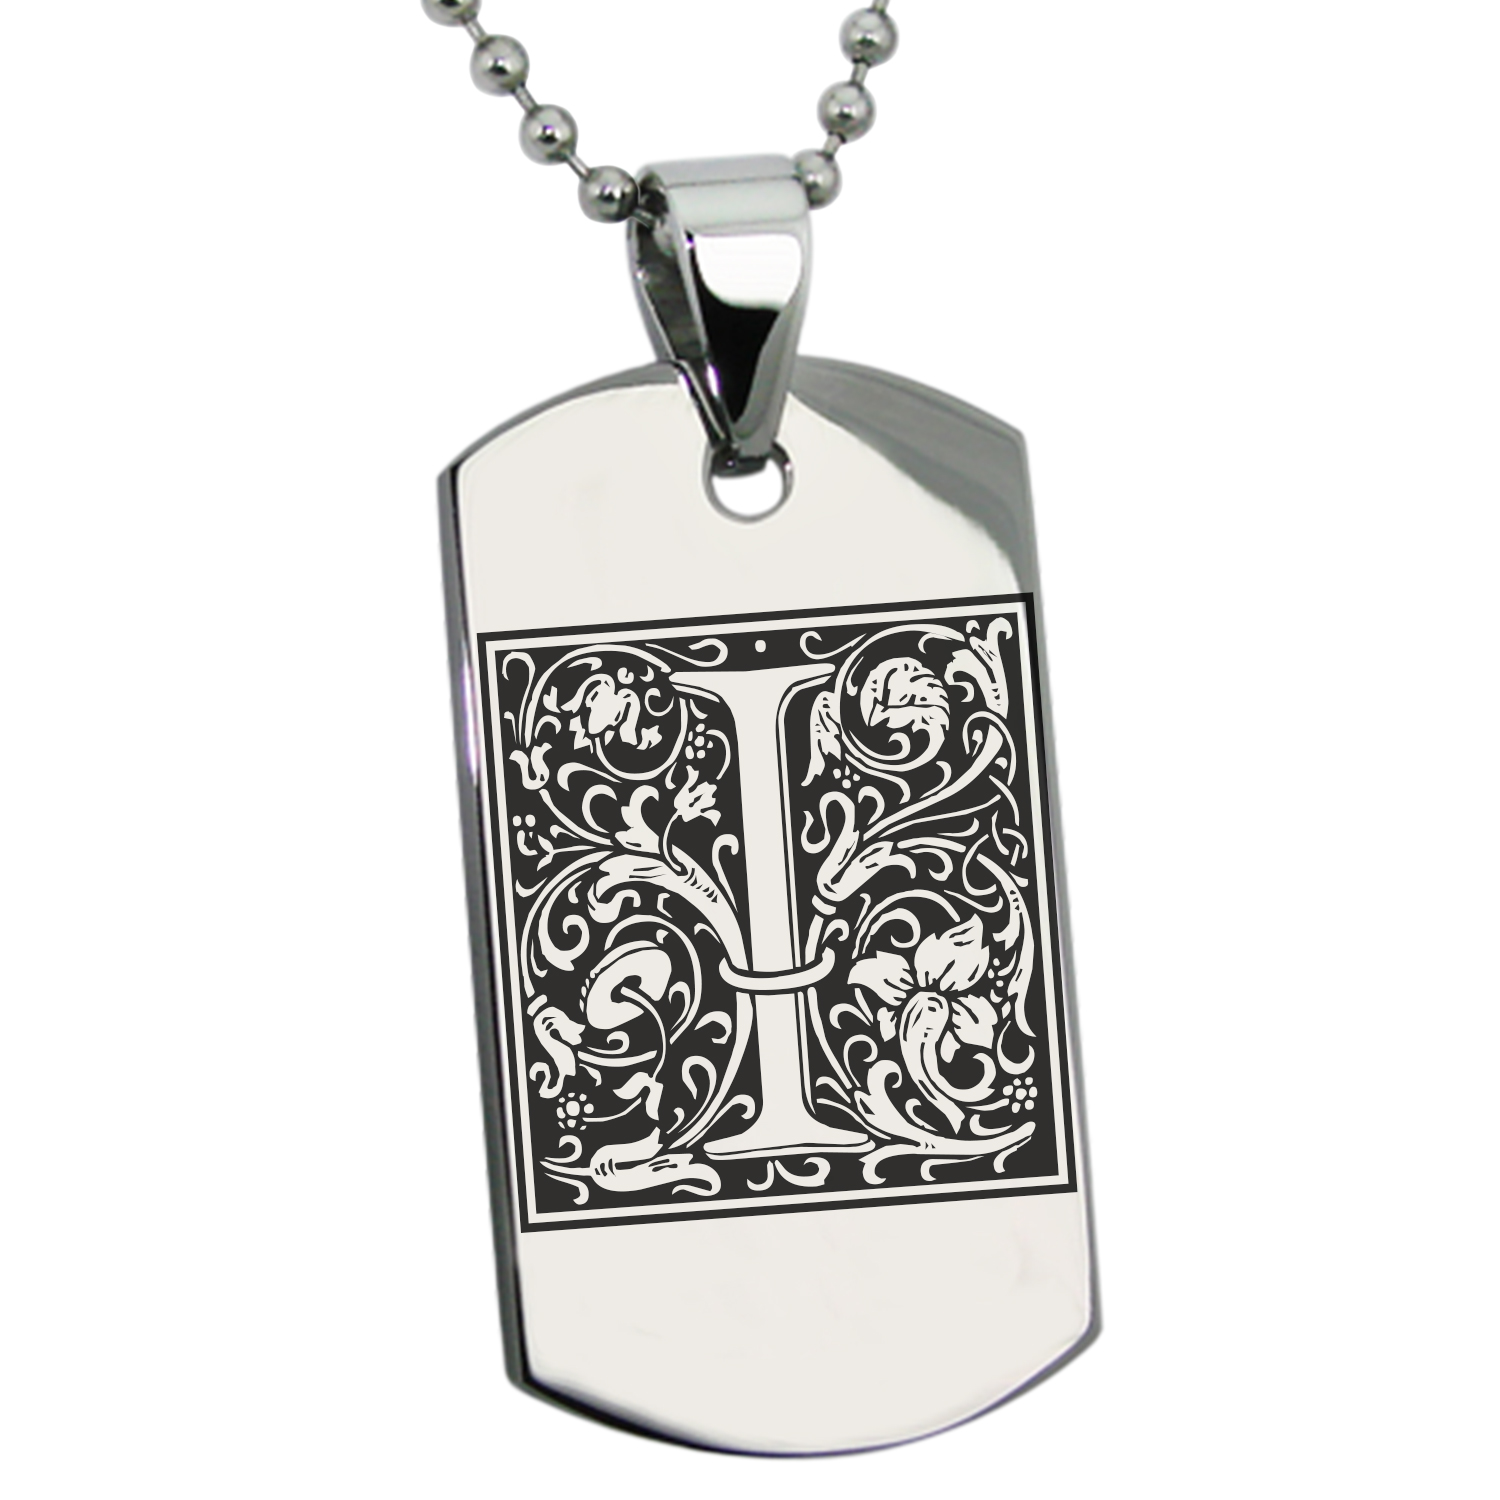 Stainless Steel Letter I Initial Floral Monogram Engraved Dog Tag Pendant